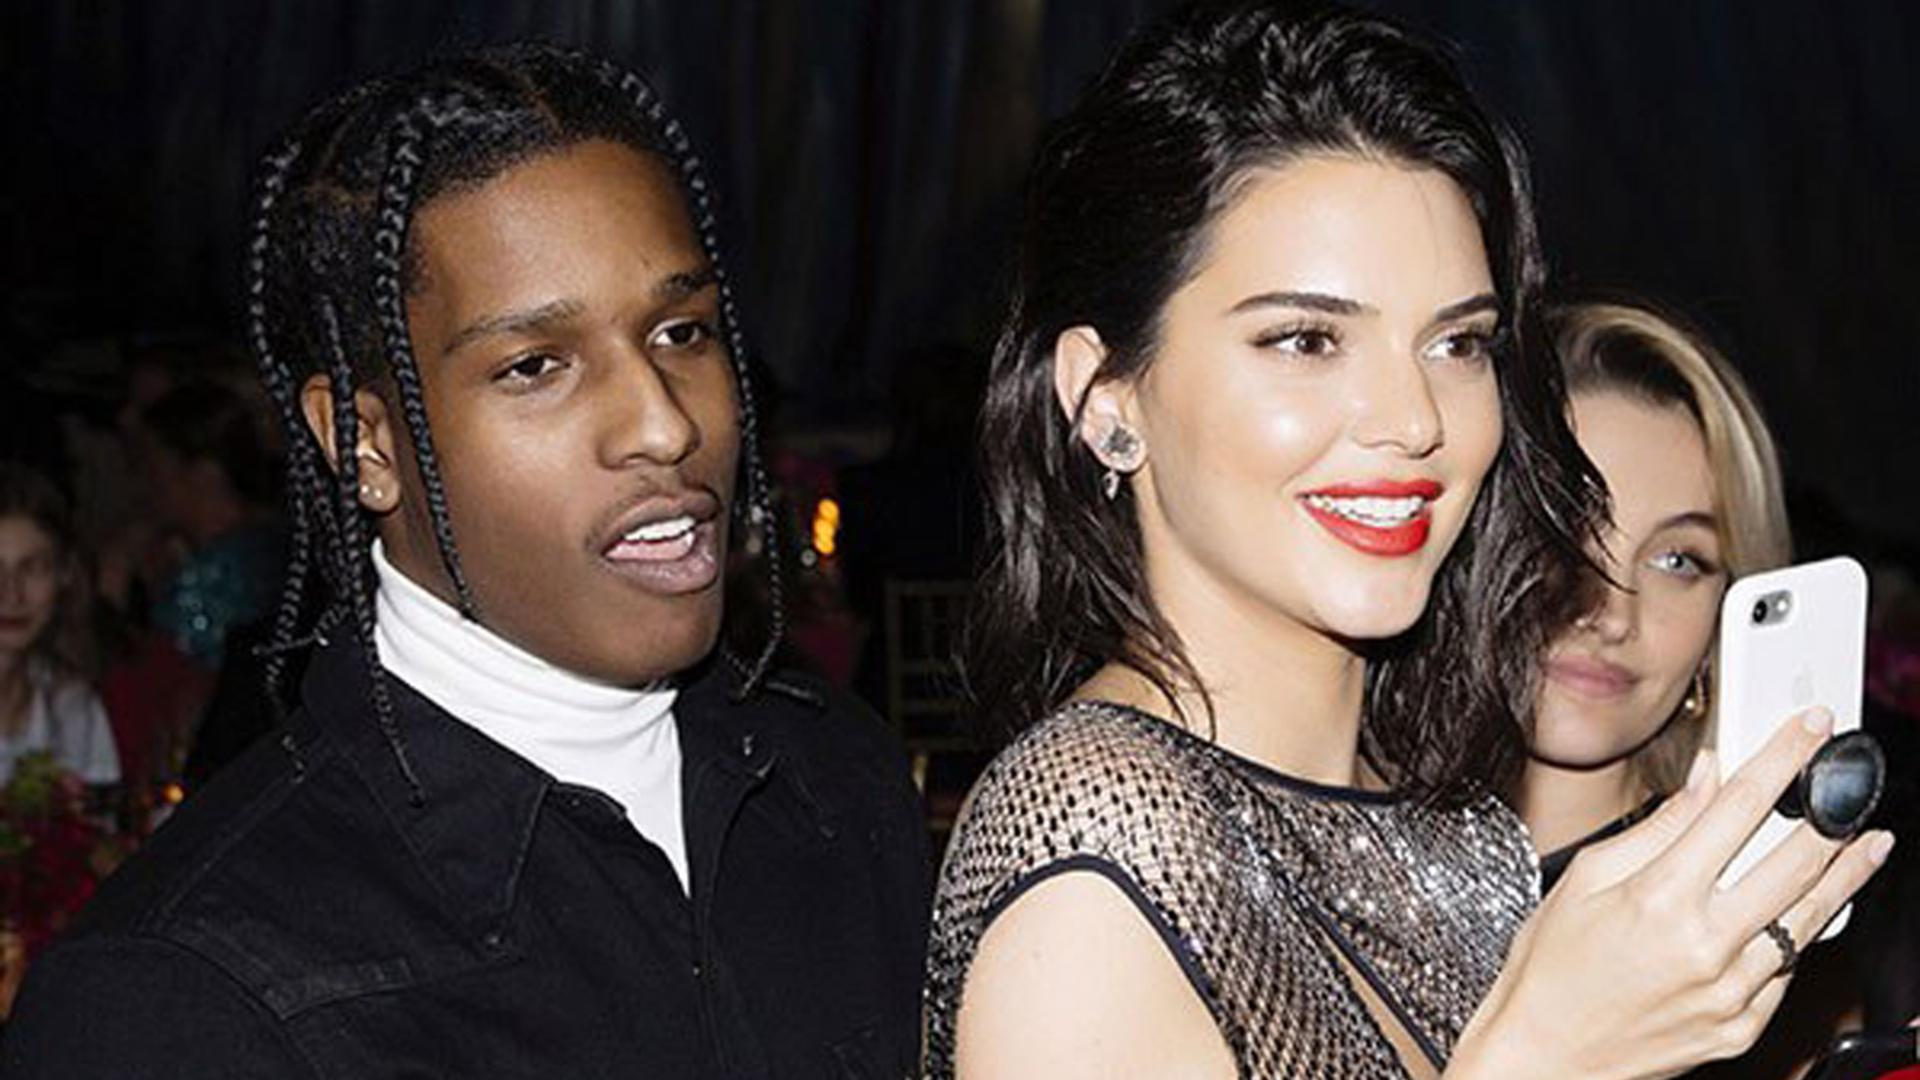 Kendall Jenner's Boyfriend A$AP Rocky is Ready to Go PUBLIC on the Red Carpet!